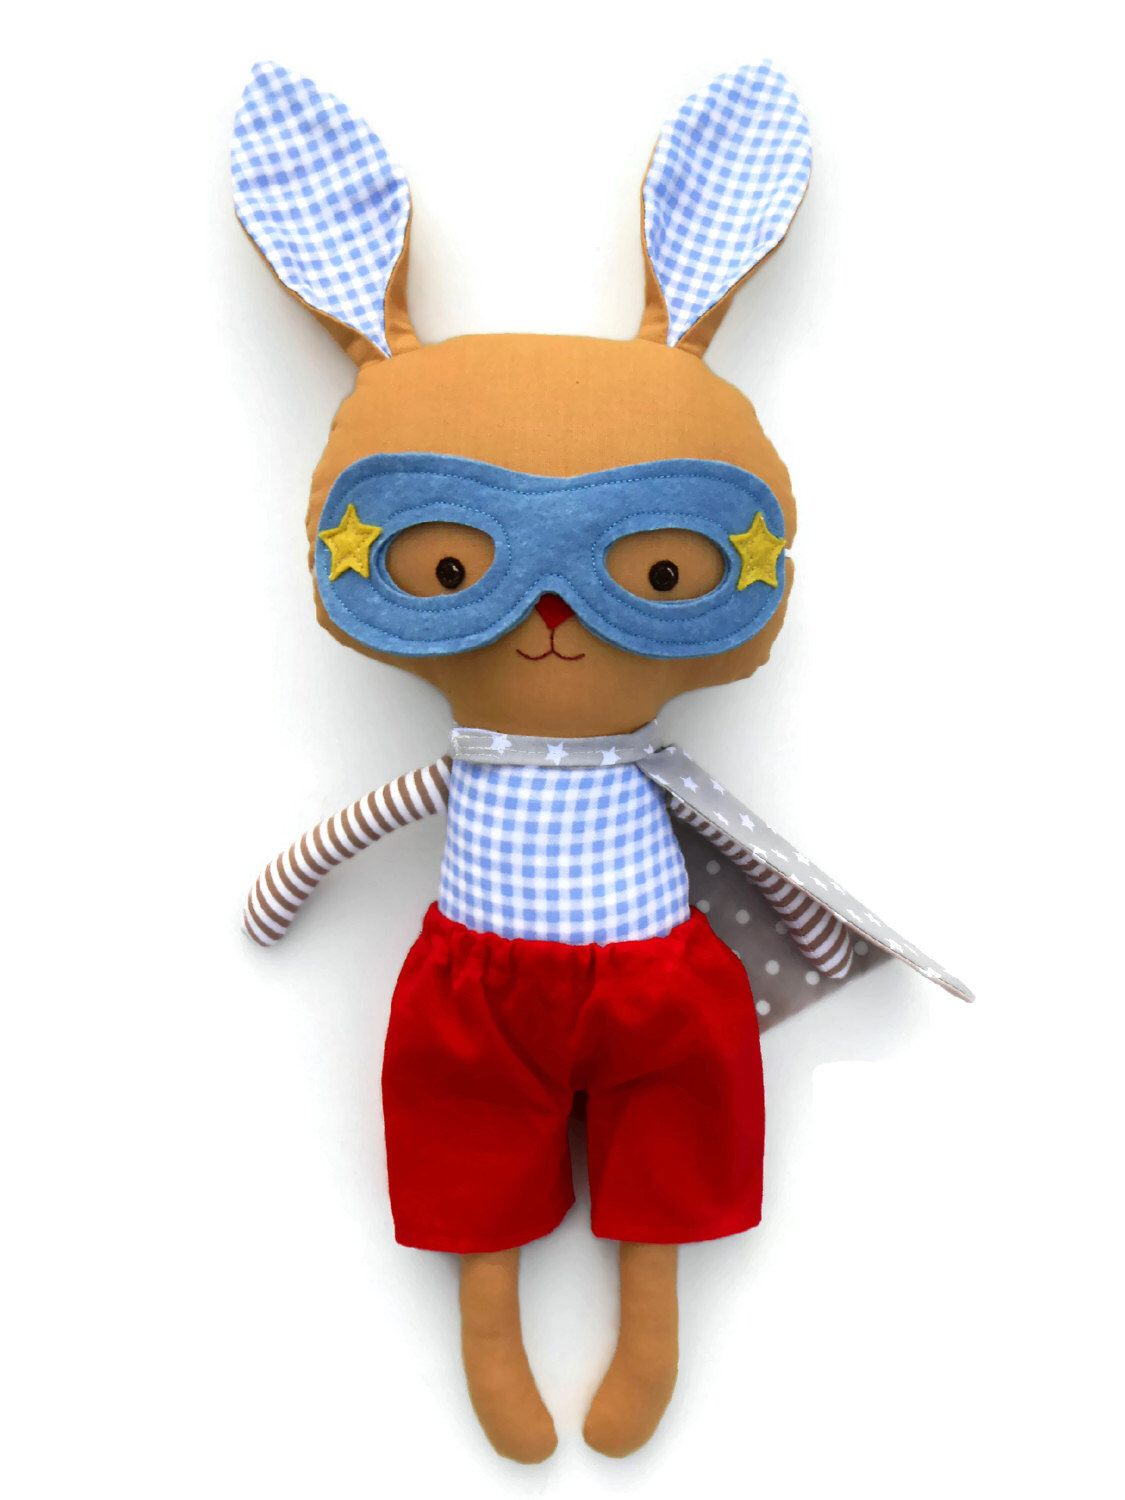 Plush easter bunny superhero stuffed rabbit for toddler gift for plush easter bunny superhero stuffed rabbit for toddler gift for kids handmade doll for easter gift negle Image collections